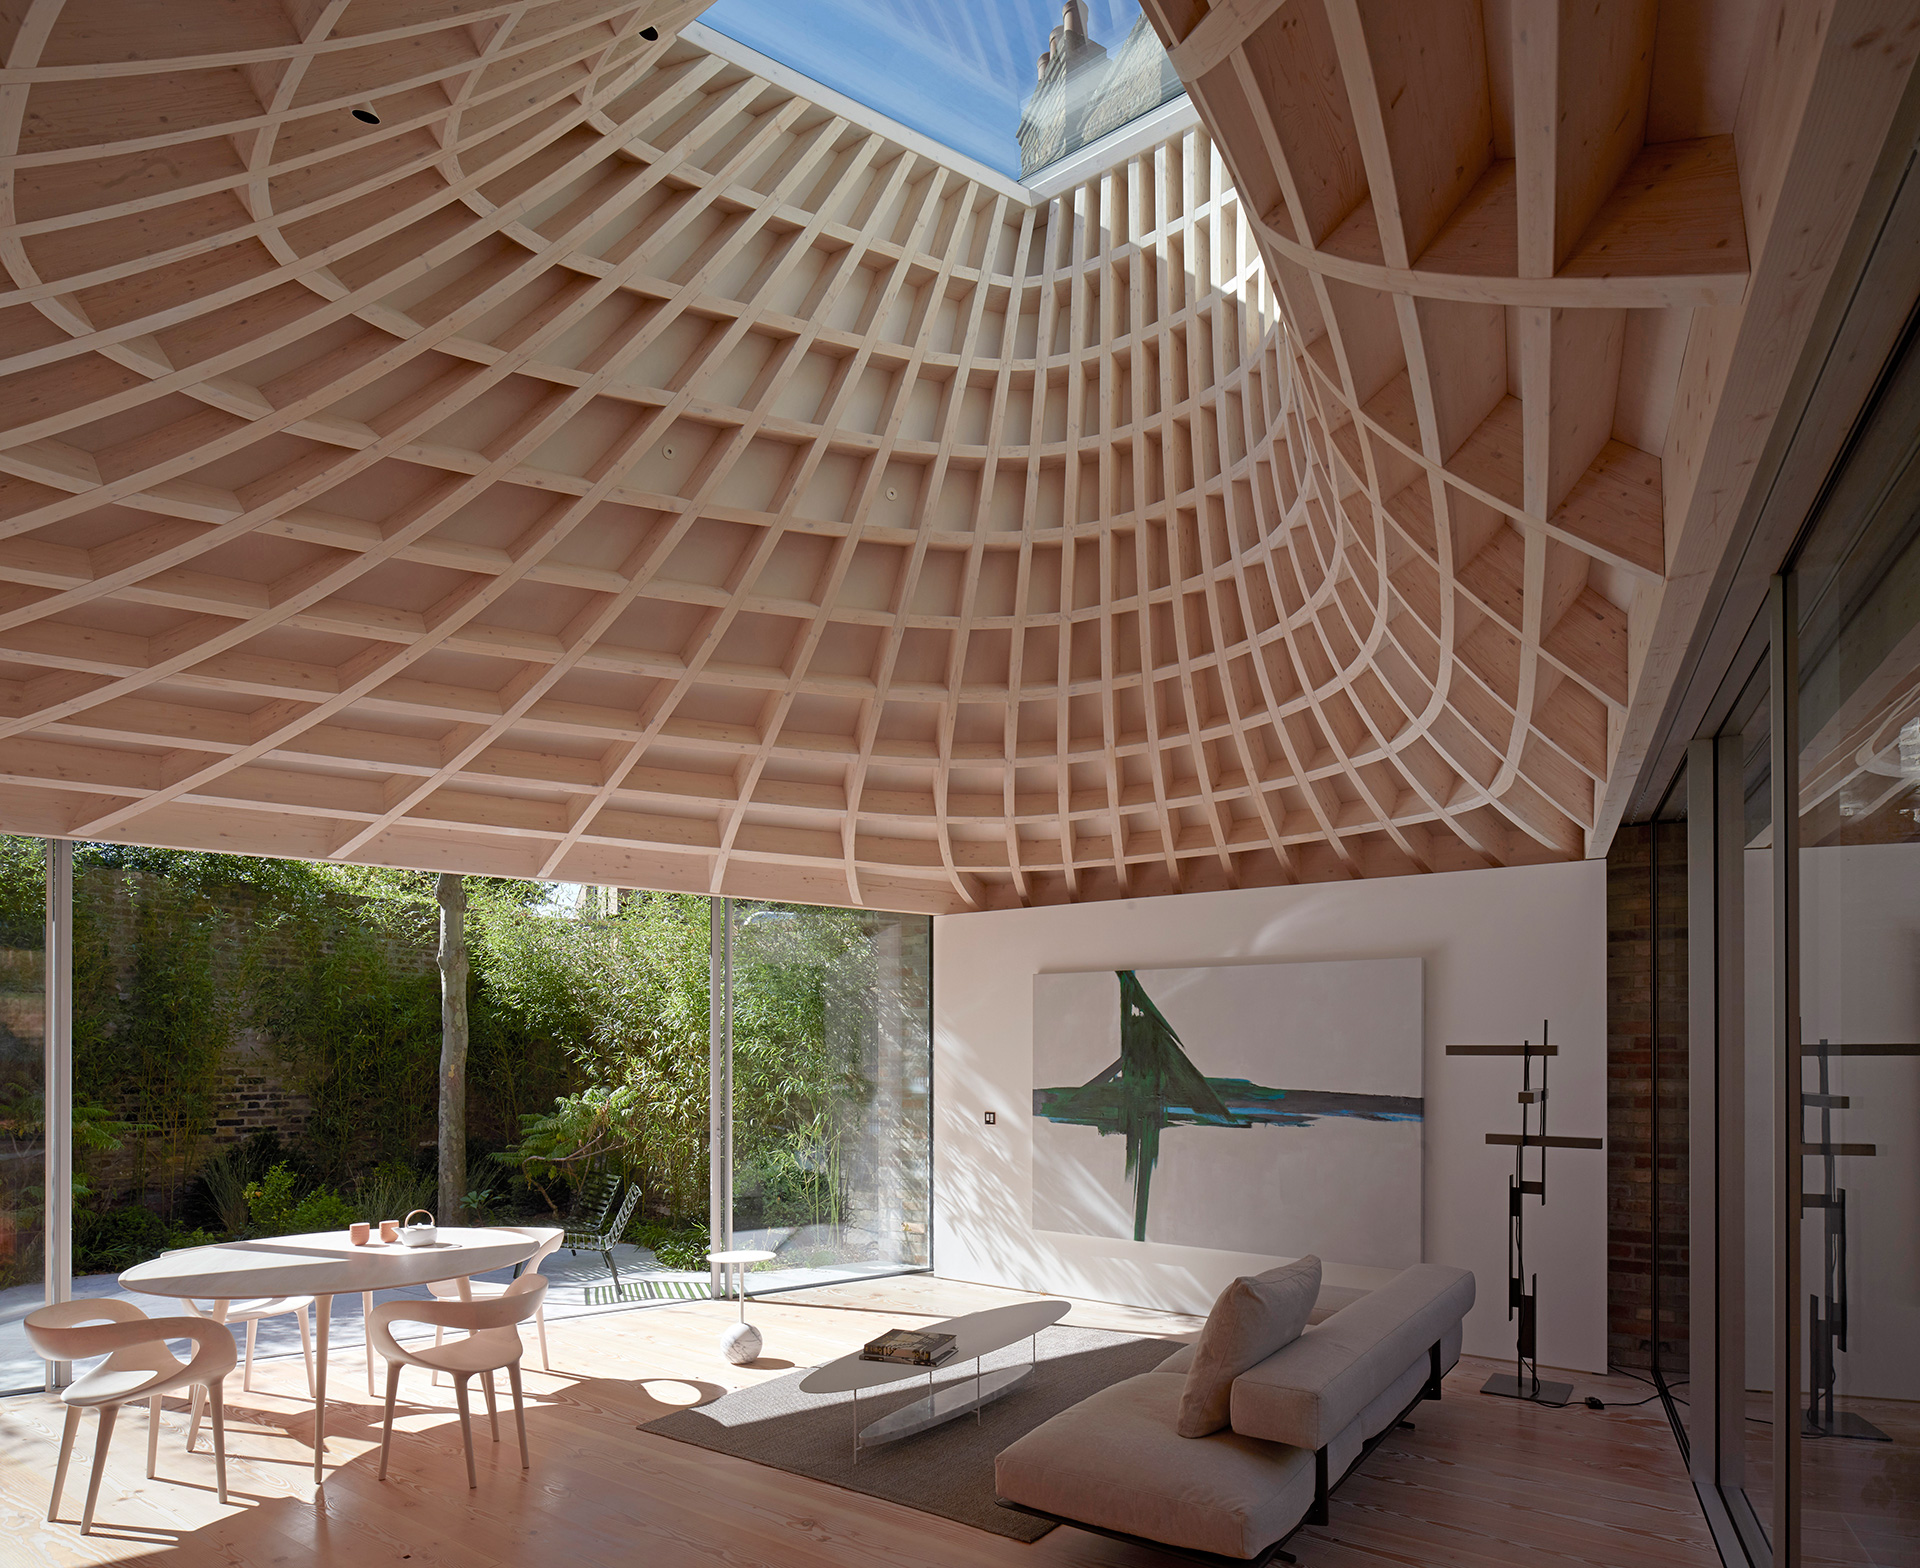 The double curvature glulam timber roof concludes in a glazed oculus | House in a Garden, London by Gianni Botsford Architects | STIRworld